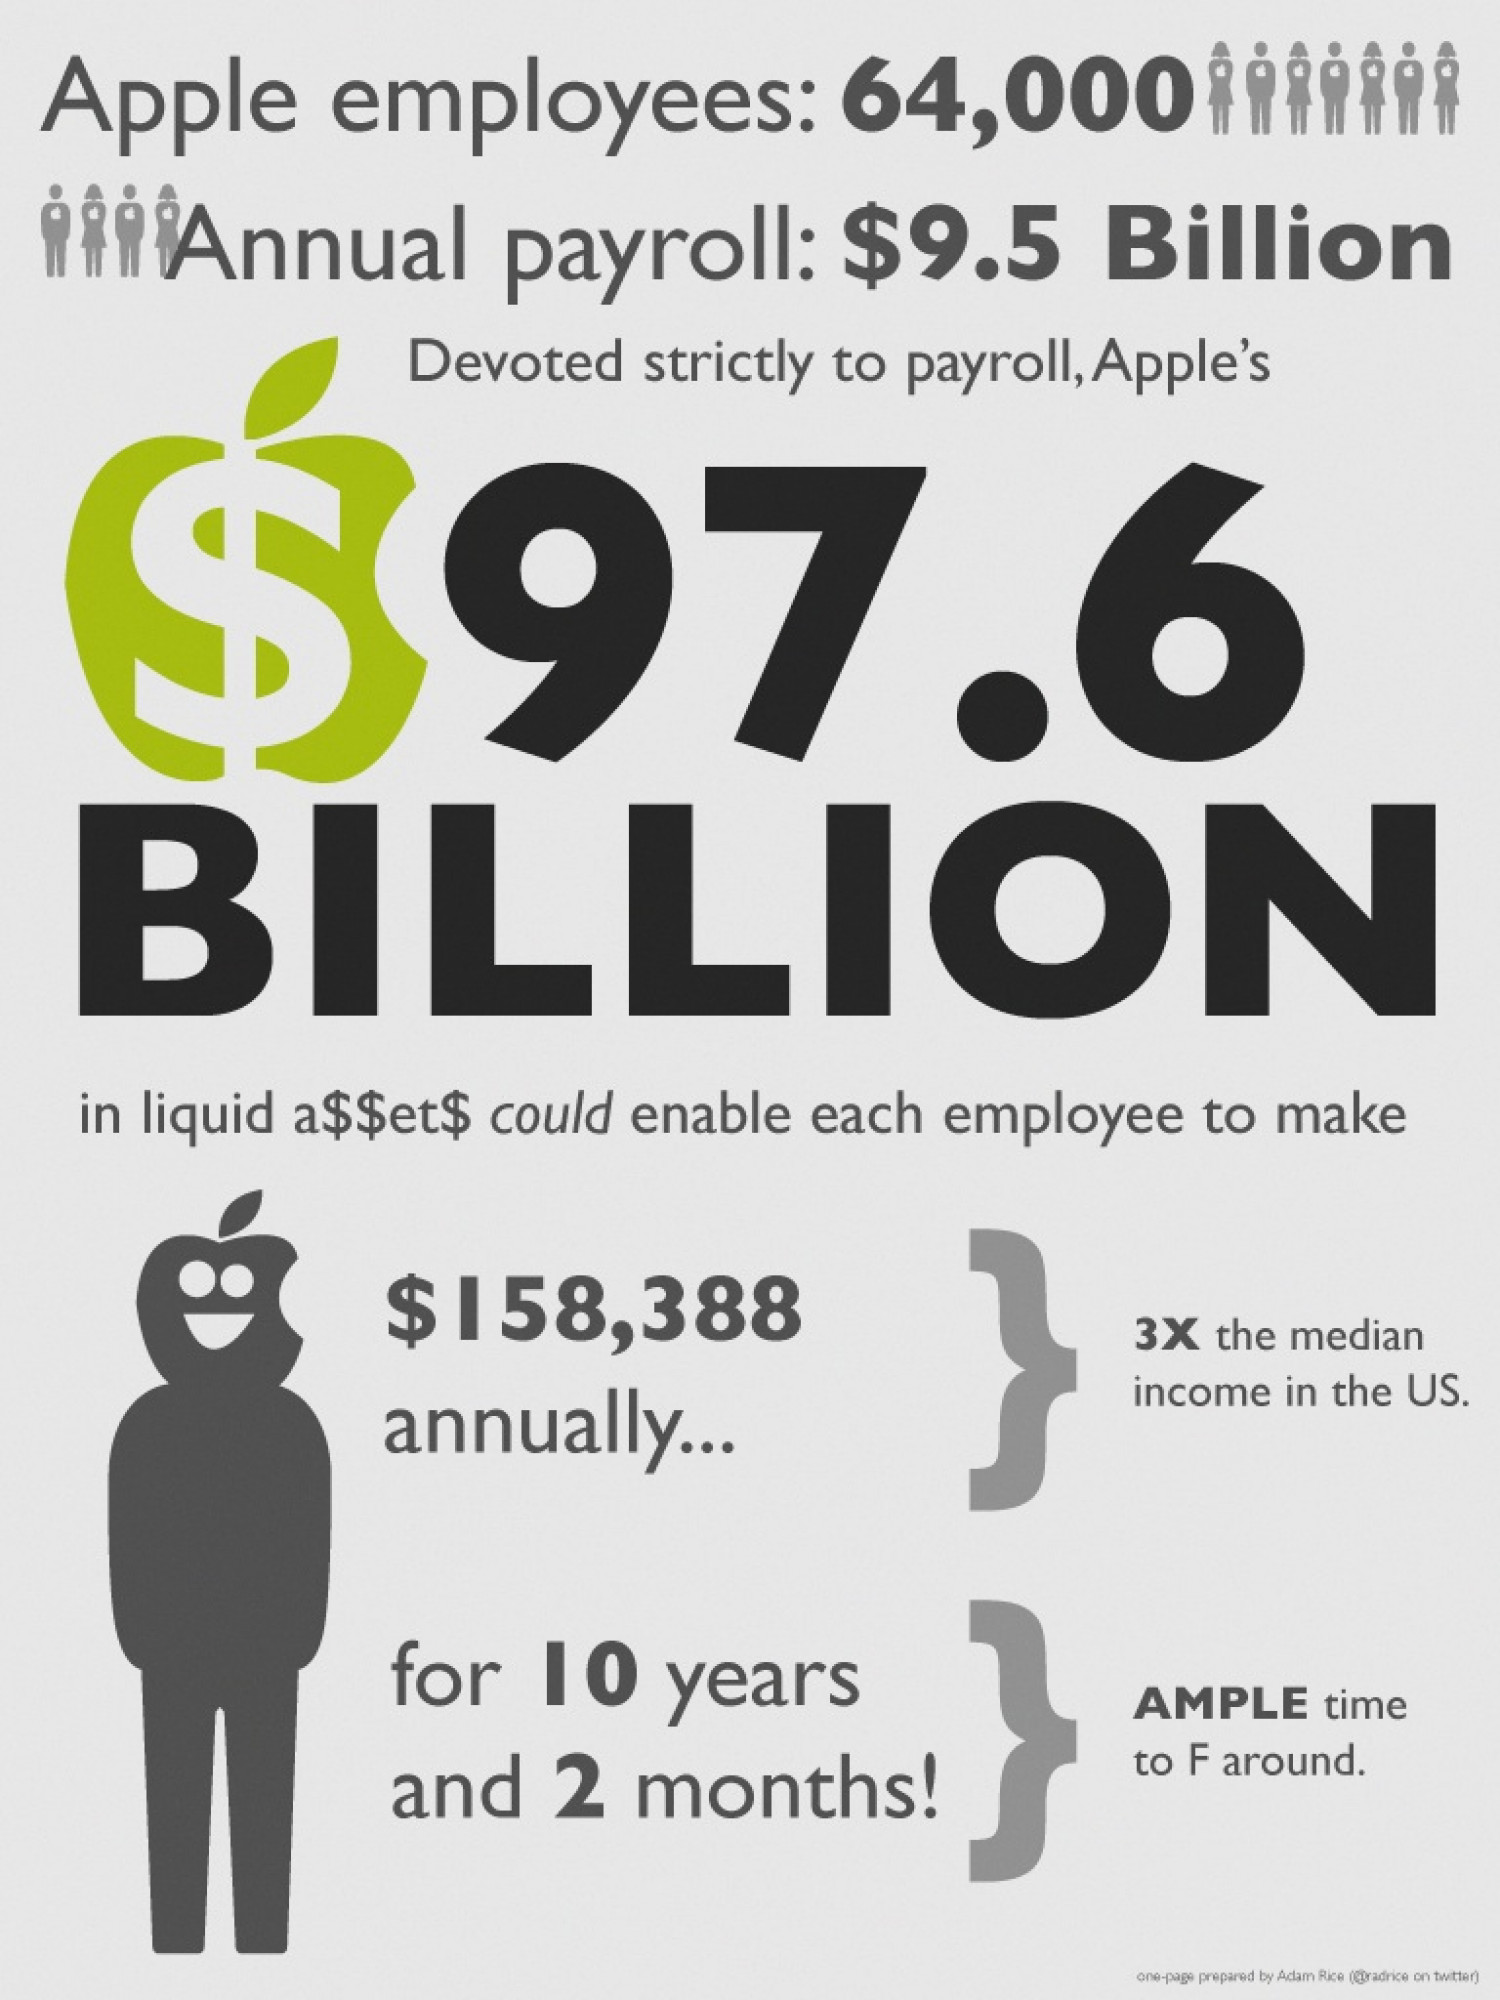 Apple's Cash Infographic